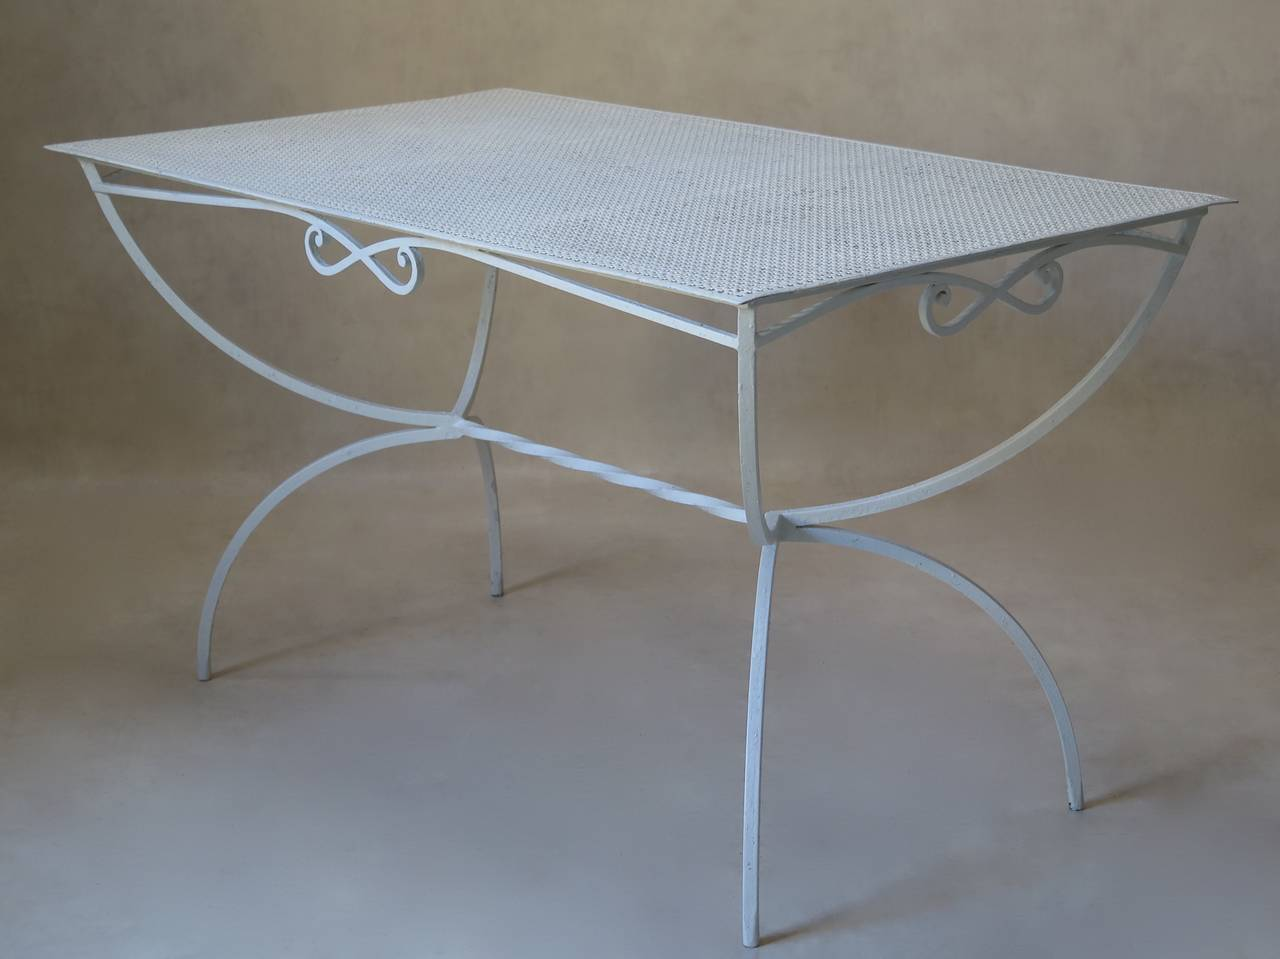 Outdoor Dining Table by Maison Jansen, France, 1950s In Excellent Condition In Isle Sur La Sorgue, Vaucluse